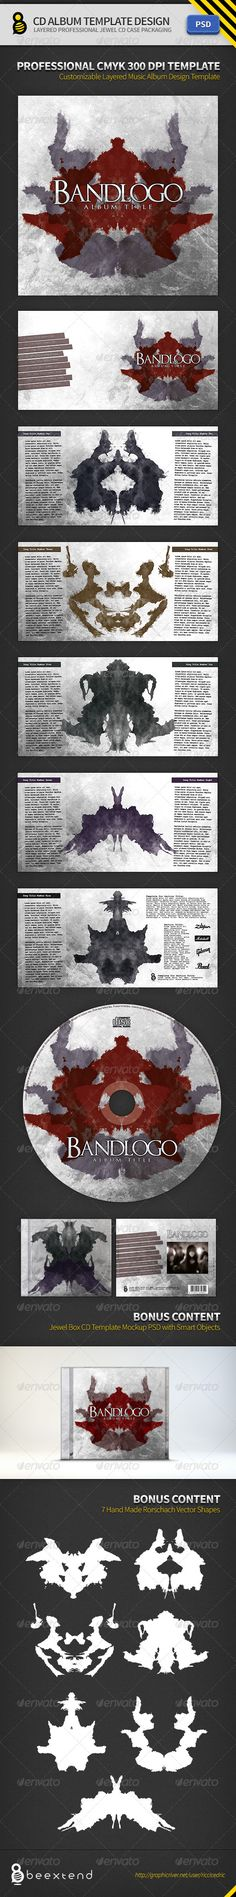 CD Album Template Design II